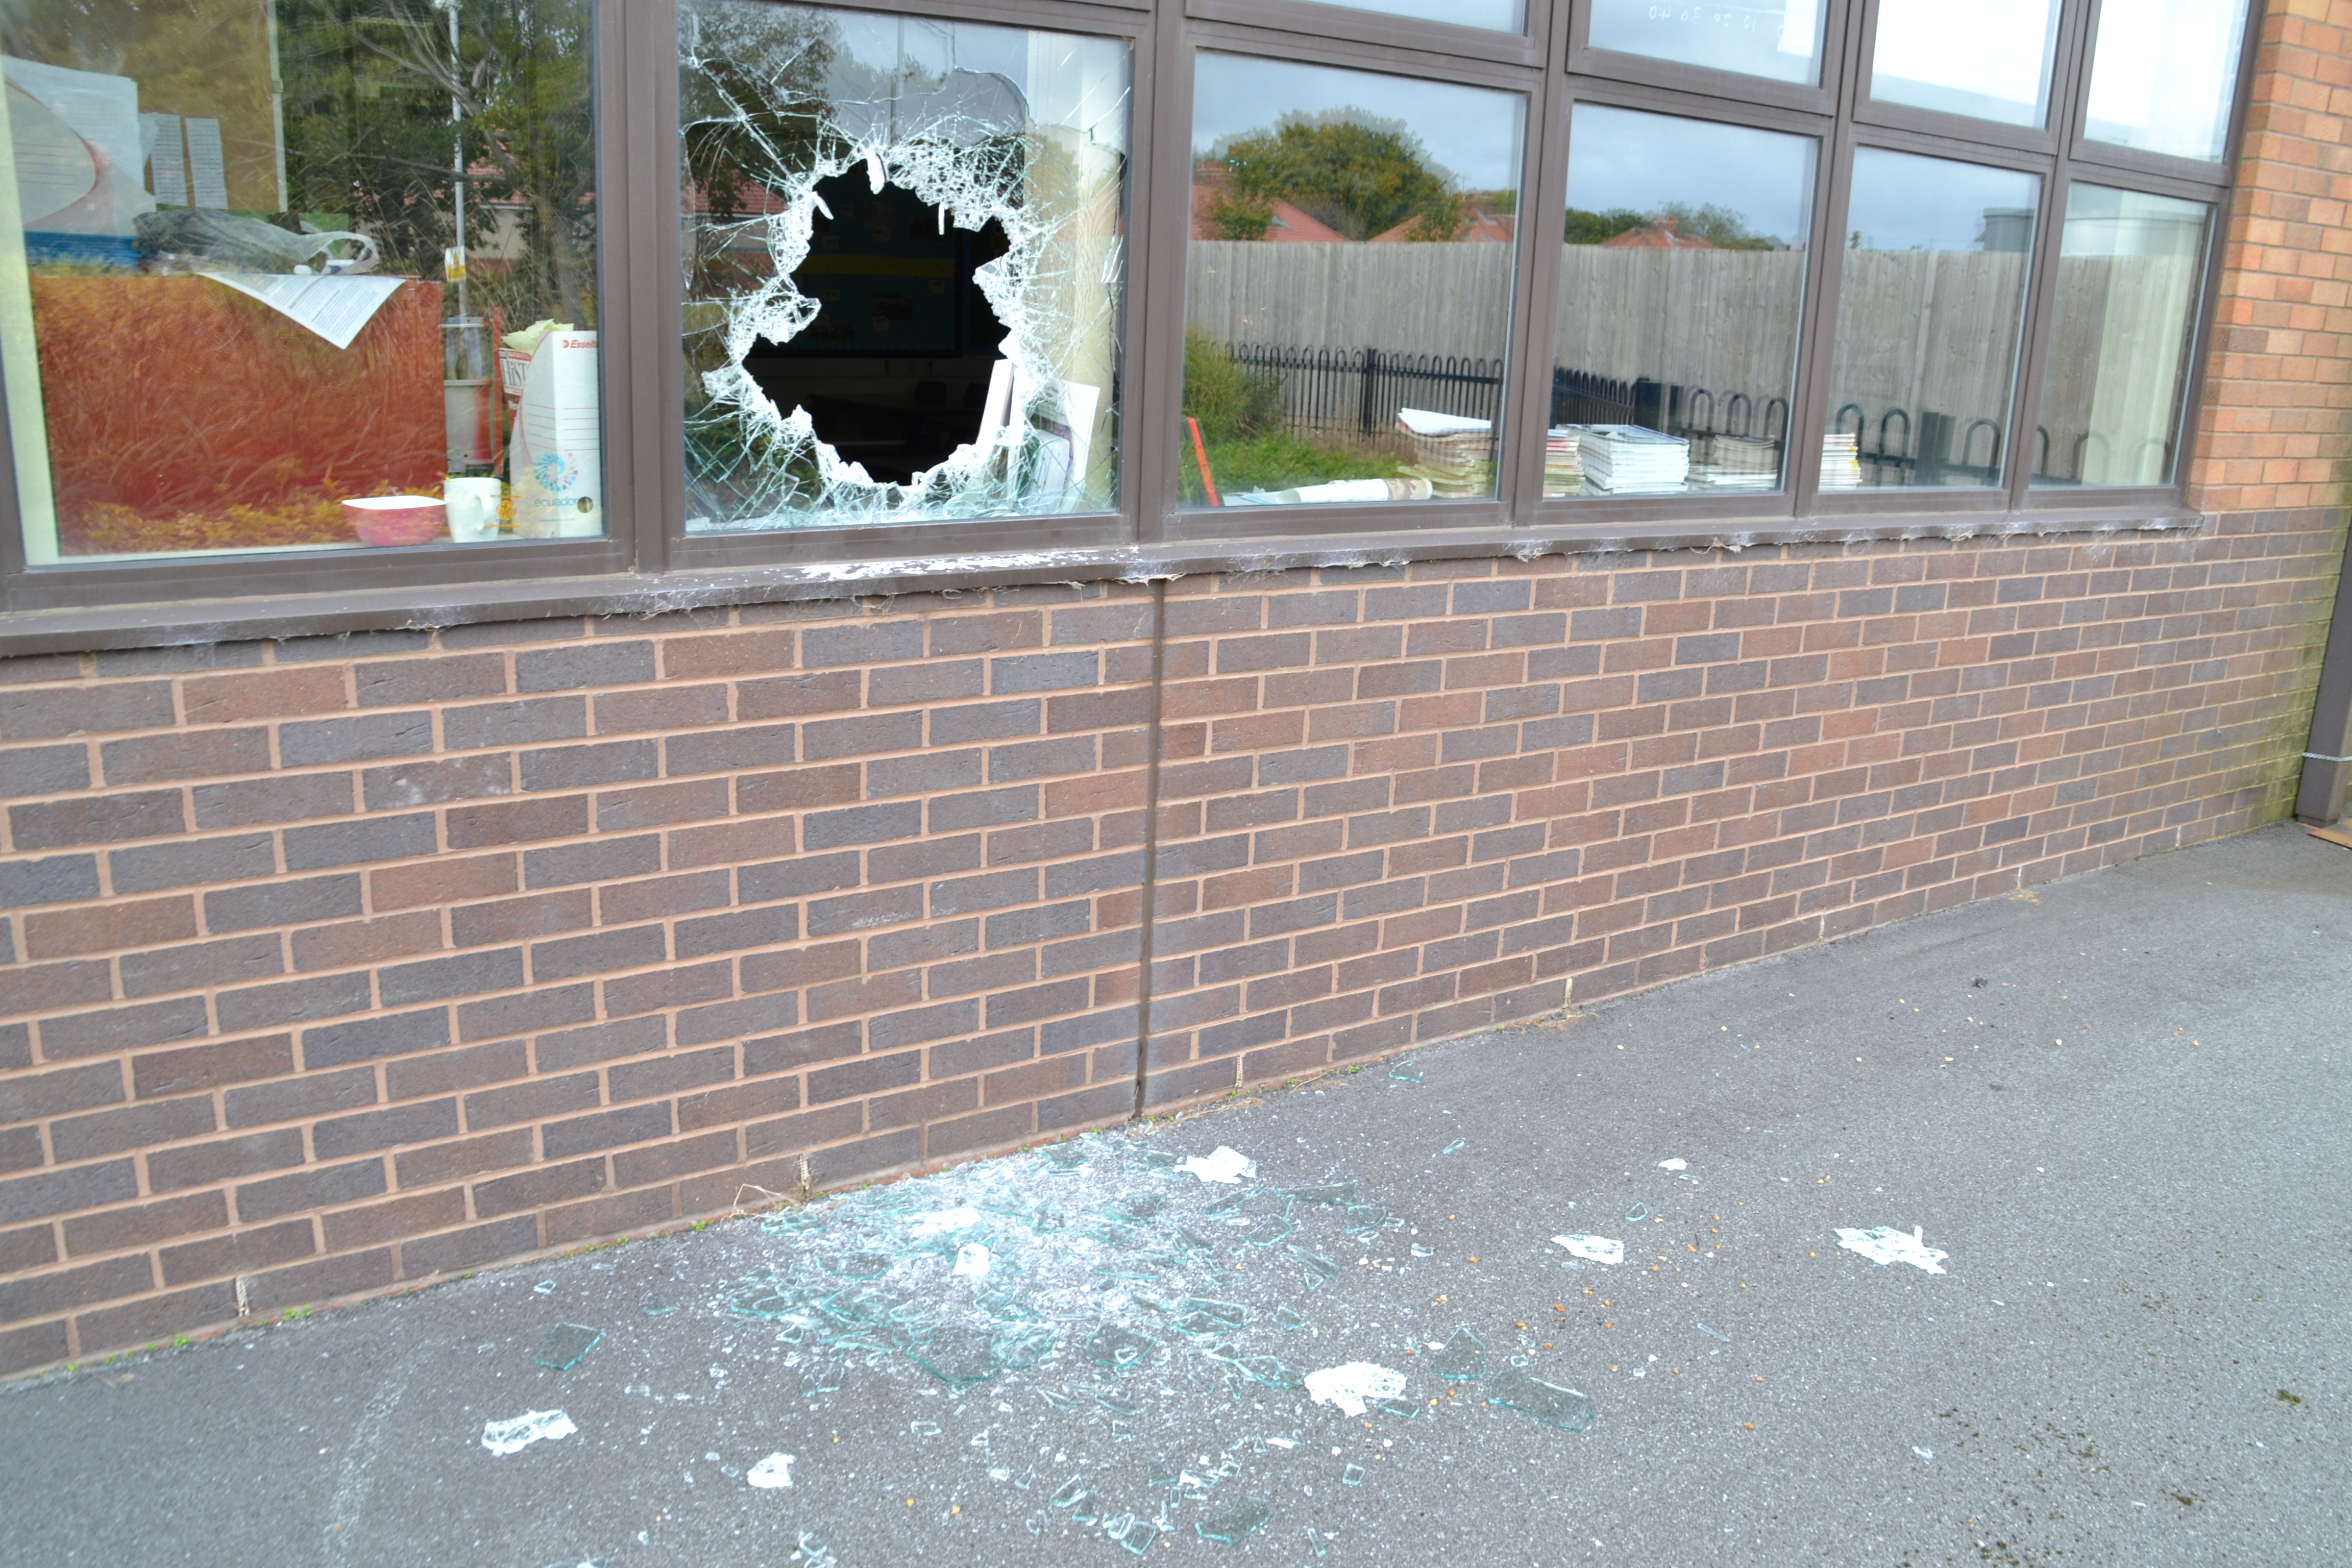 Heworth School damage